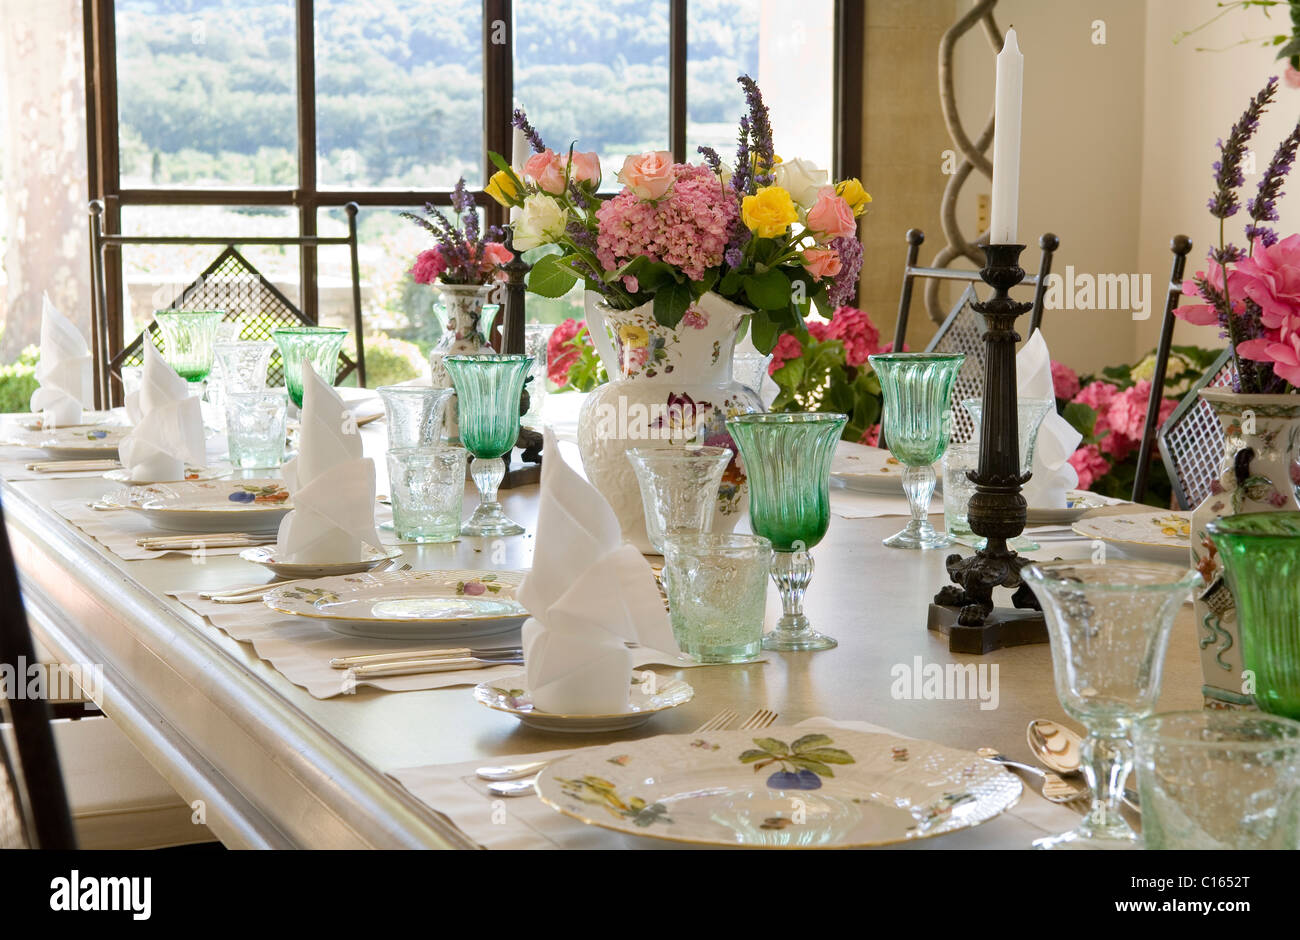 Charmant Herend China On Laid Dining Table With Vase Of Flowers